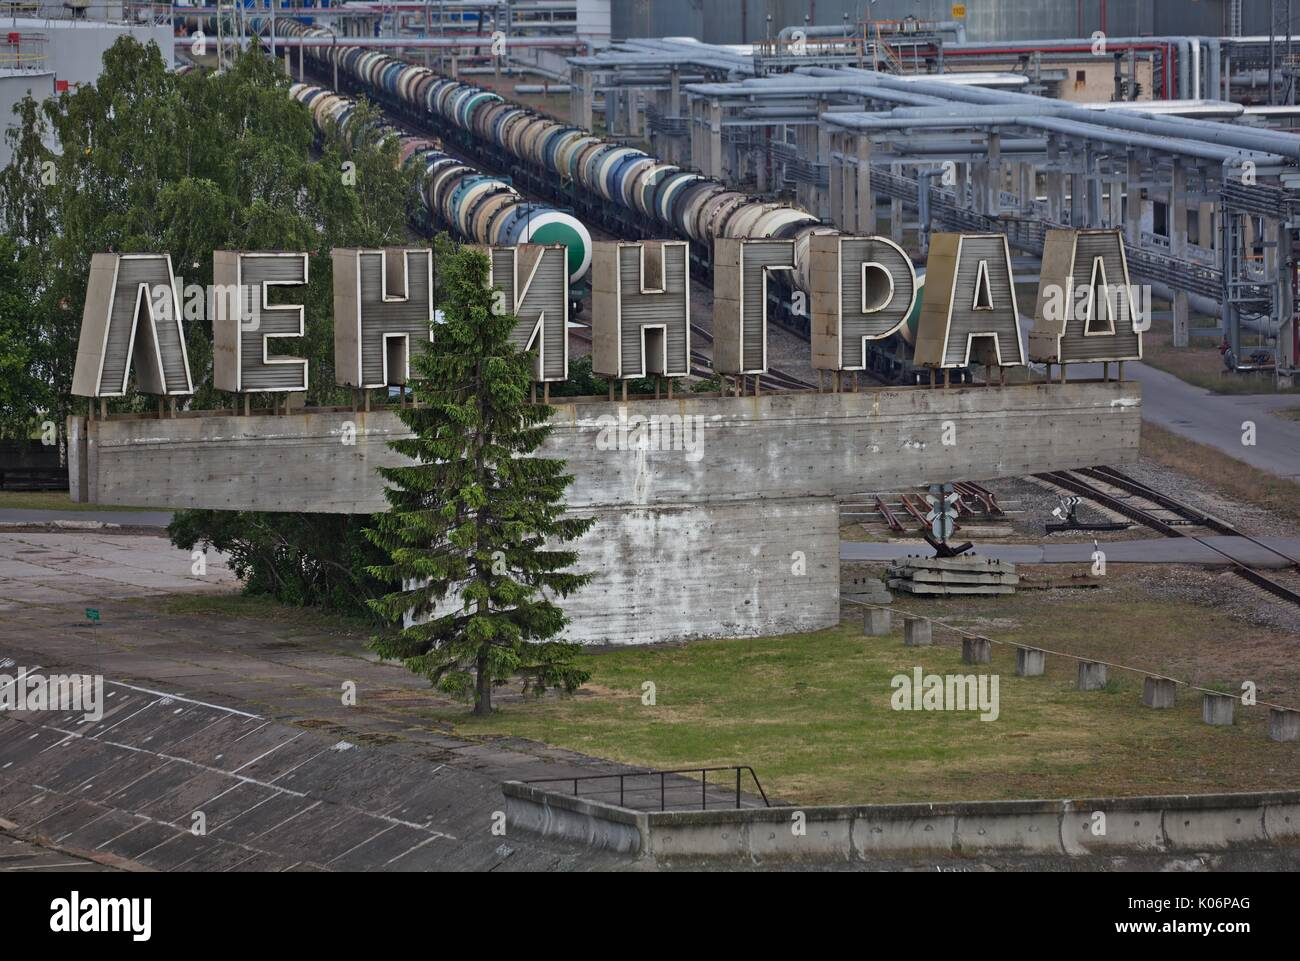 Old soviet Leningrad sign on entering St. Petersburg harbour - Stock Image